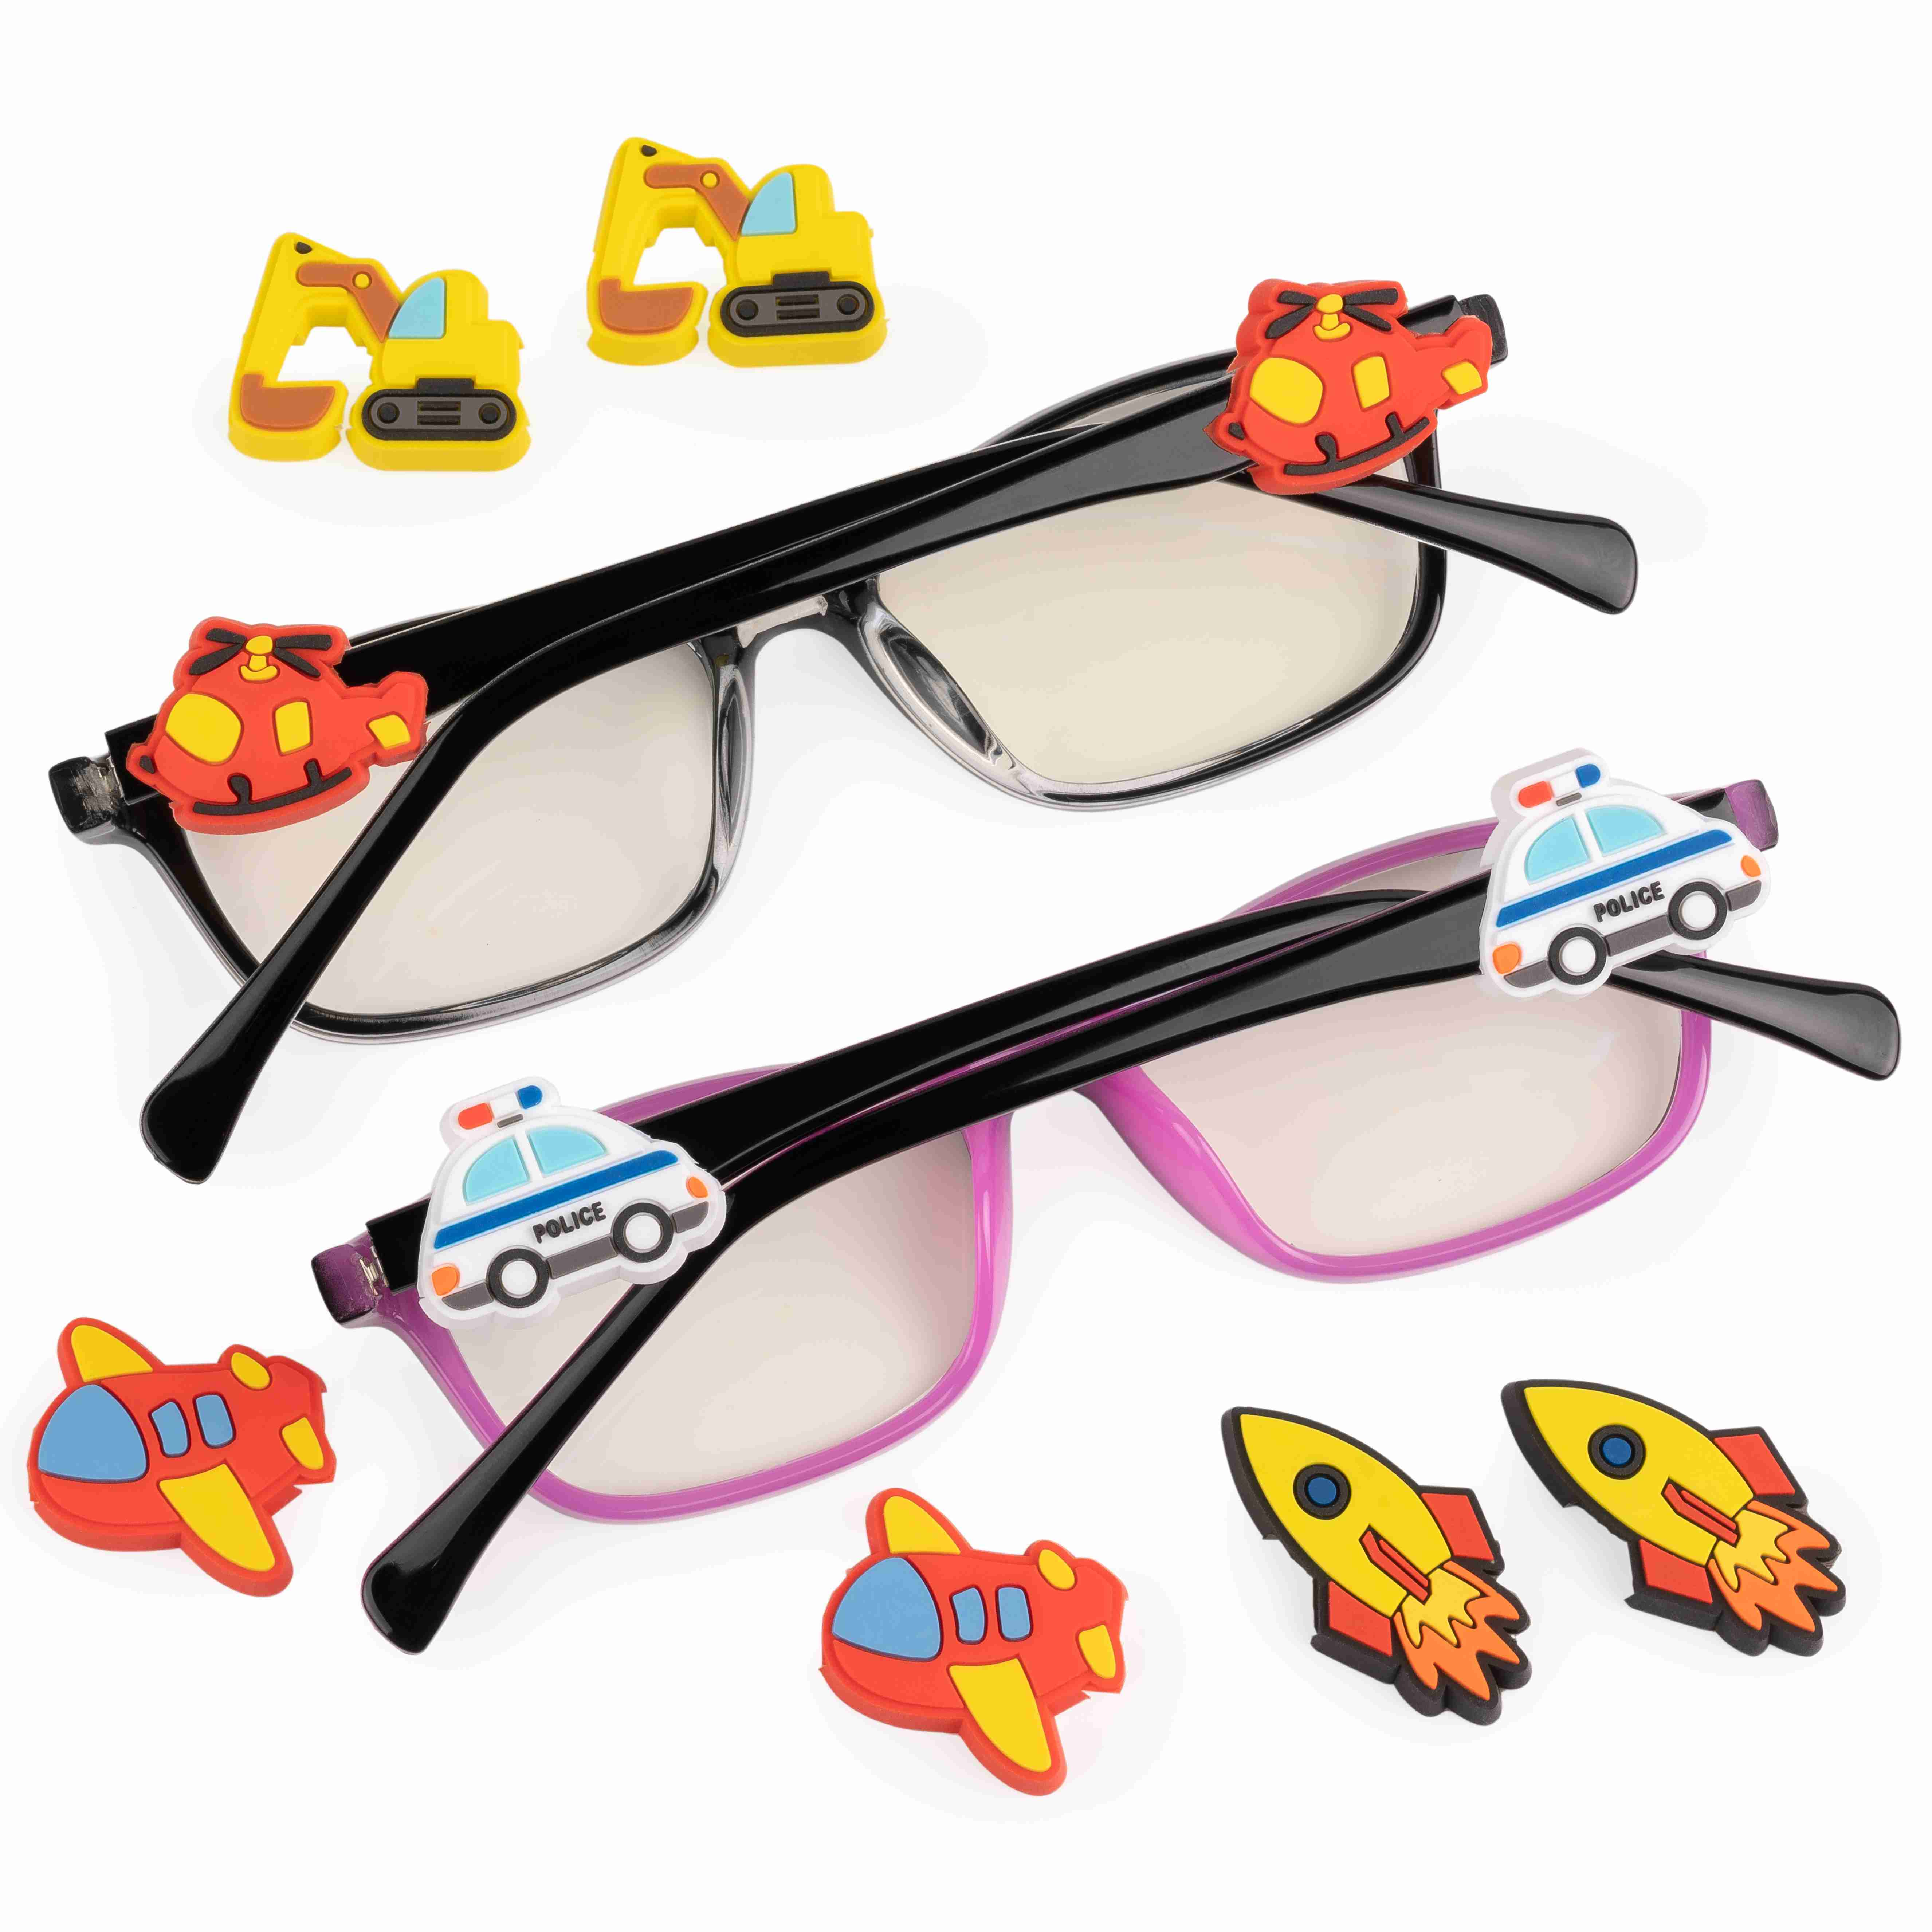 Eyewear-Charms-for-Kids-transport-2 with cash back rebate